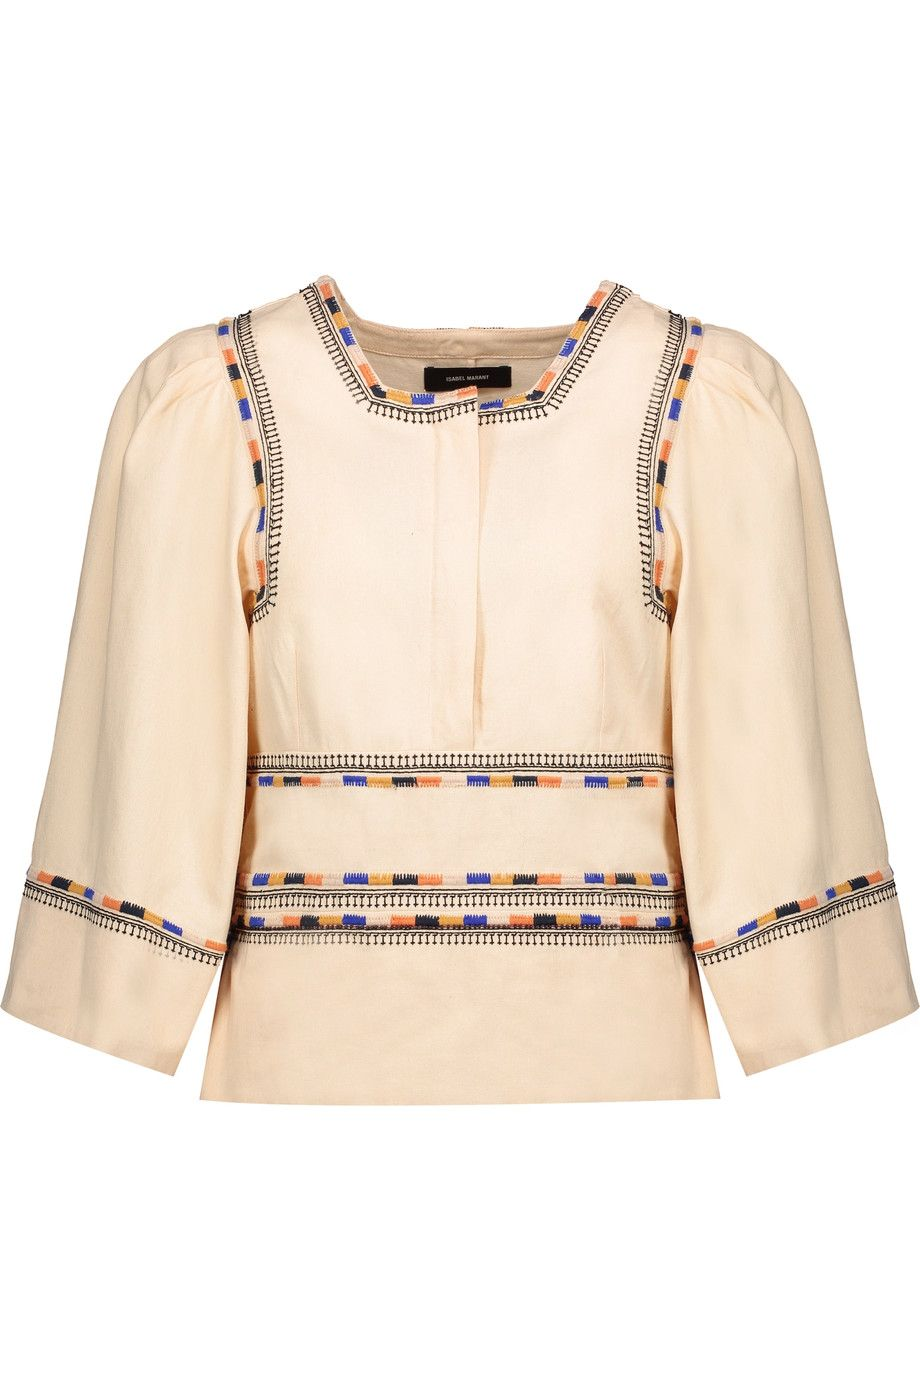 ISABEL MARANT Siloe Embroidered Cotton Top. #isabelmarant #cloth #top